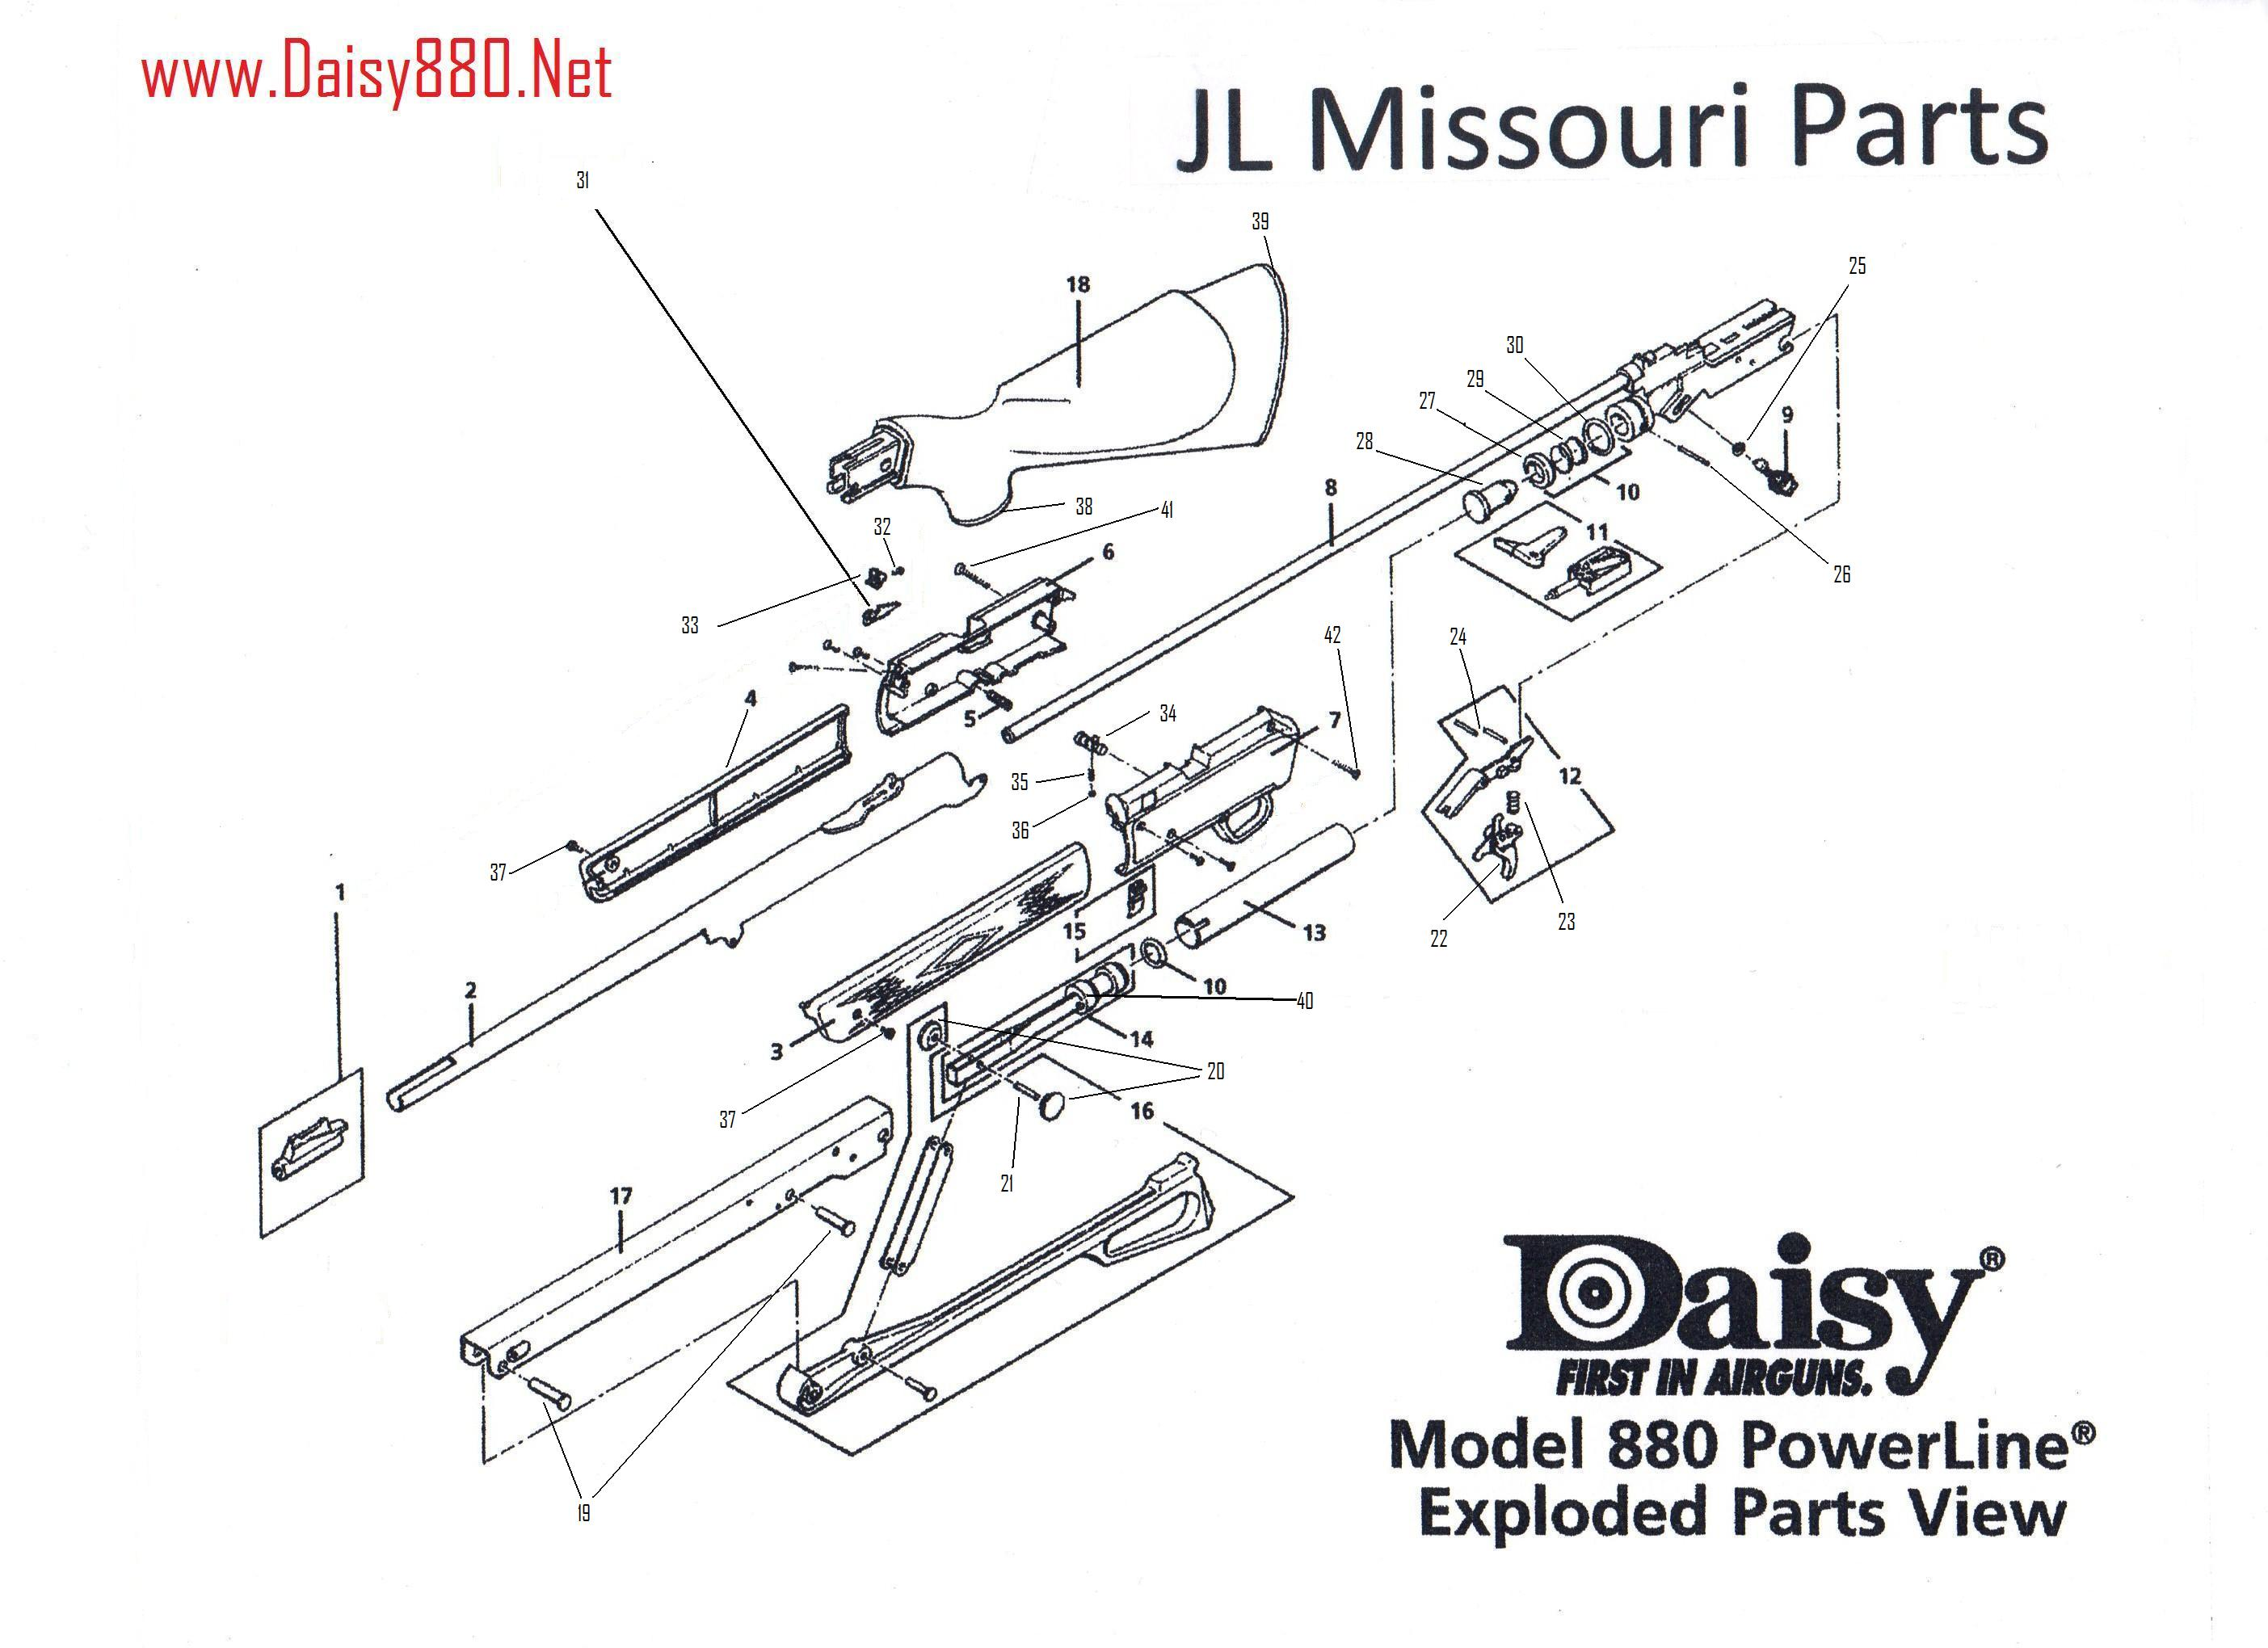 Daisy diagram parts wiring diagram 880 exploded parts diagrams order links daisy 880 net rh daisy880 net daisy 880 parts diagram daisy 840 parts diagram izmirmasajfo